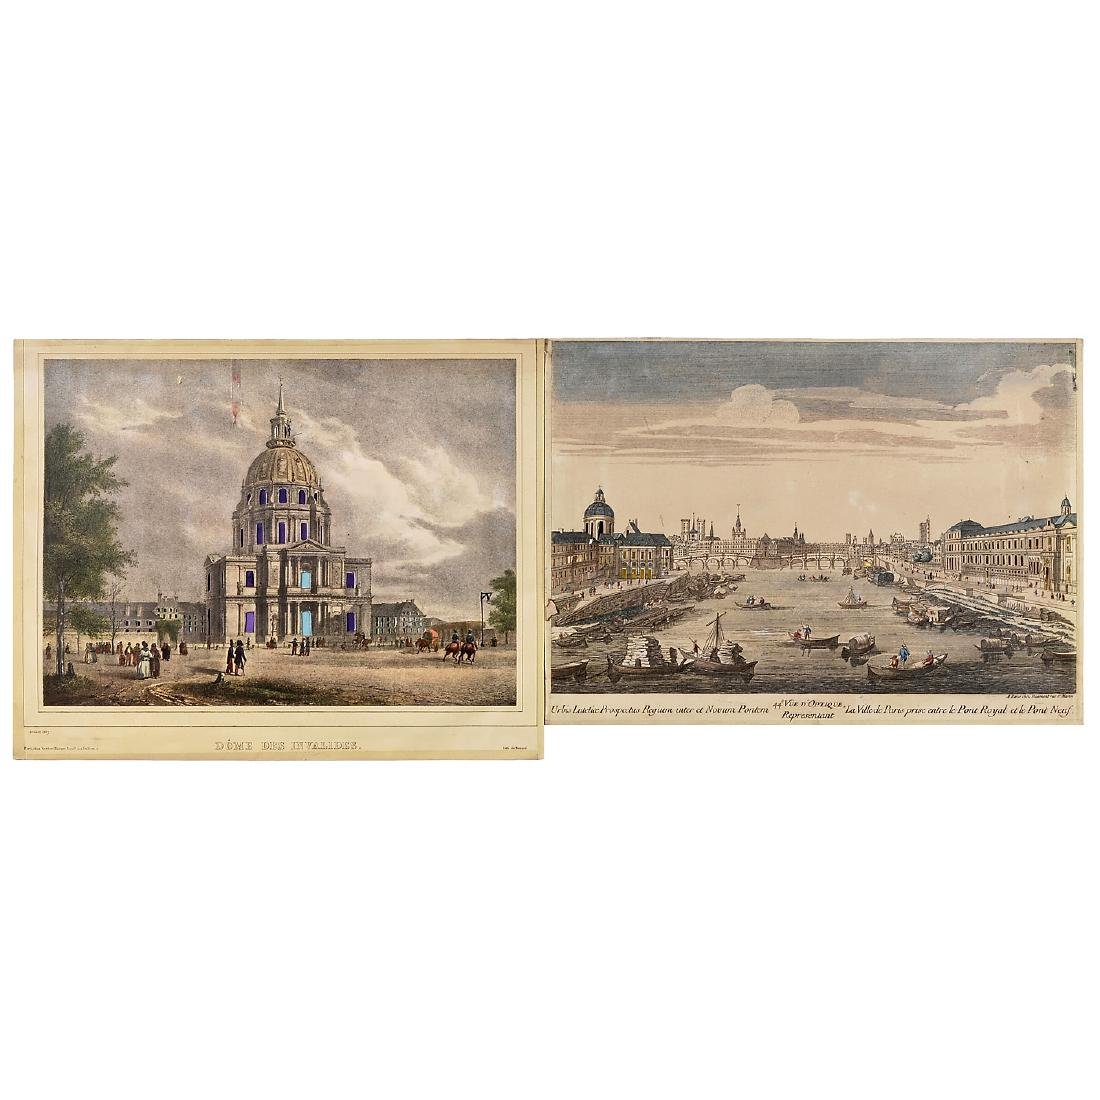 6 Day-and-Night Vues d'Optique, c. 1800-1850 - 3